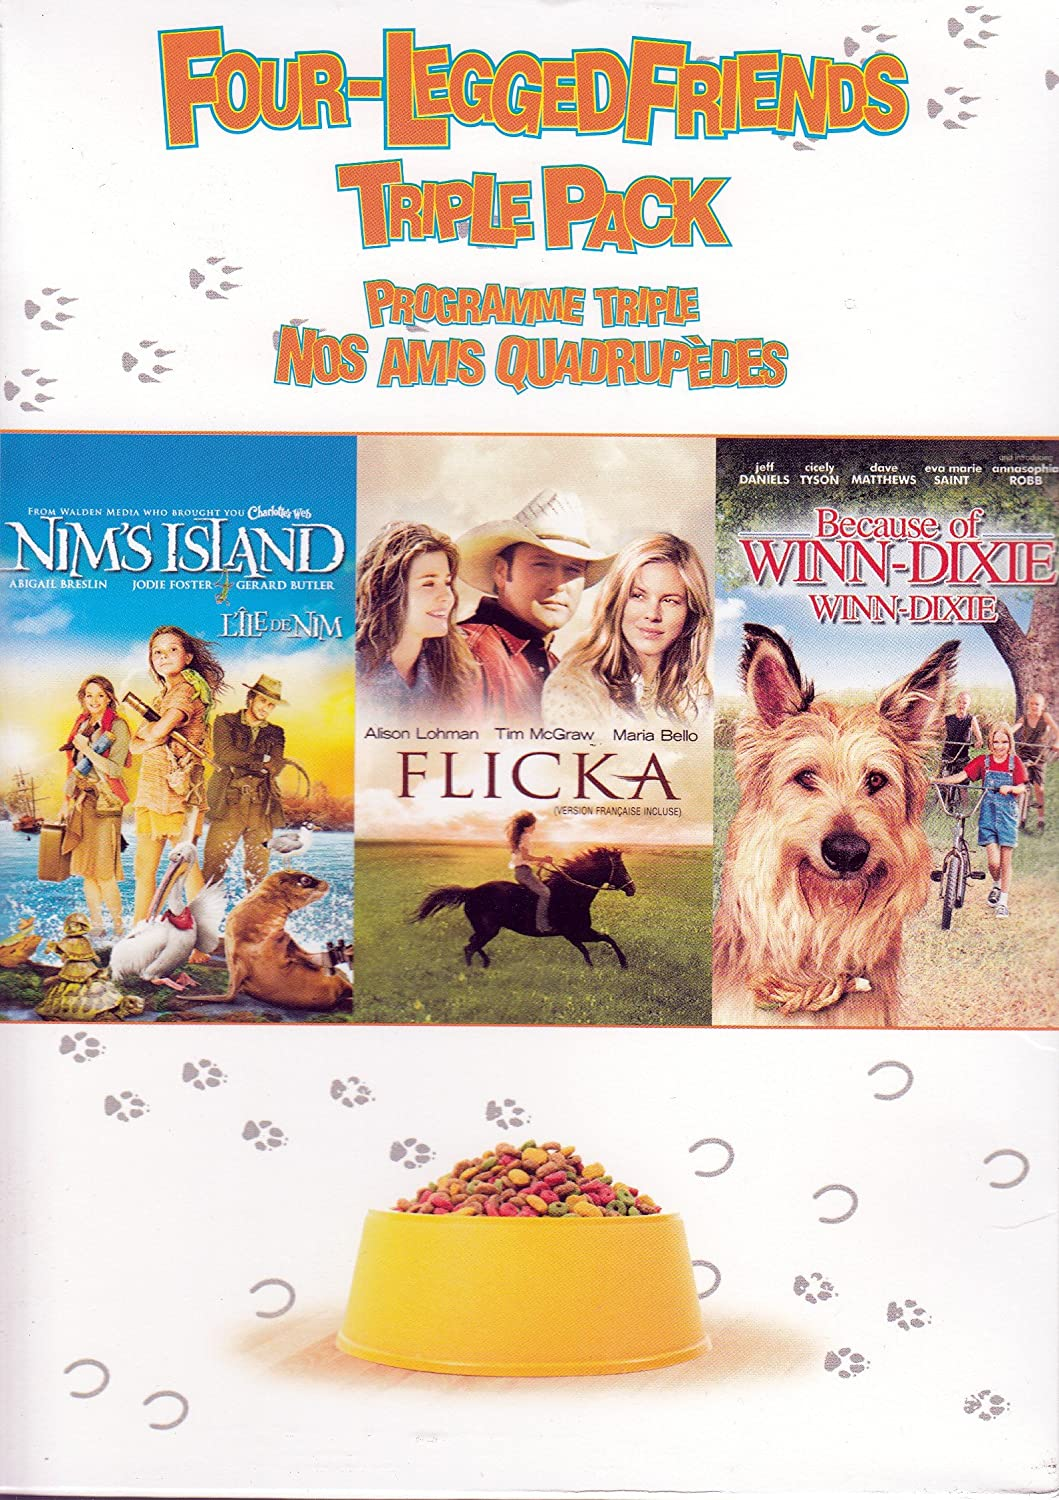 Review of winn dixie free appliances - Amazon Com Nim S Island Flicka Because Of Winn Dixie Four Legged Friends Triple Pack Abigail Breslin Jodie Foster Gerard Butler Tim Mcgraw